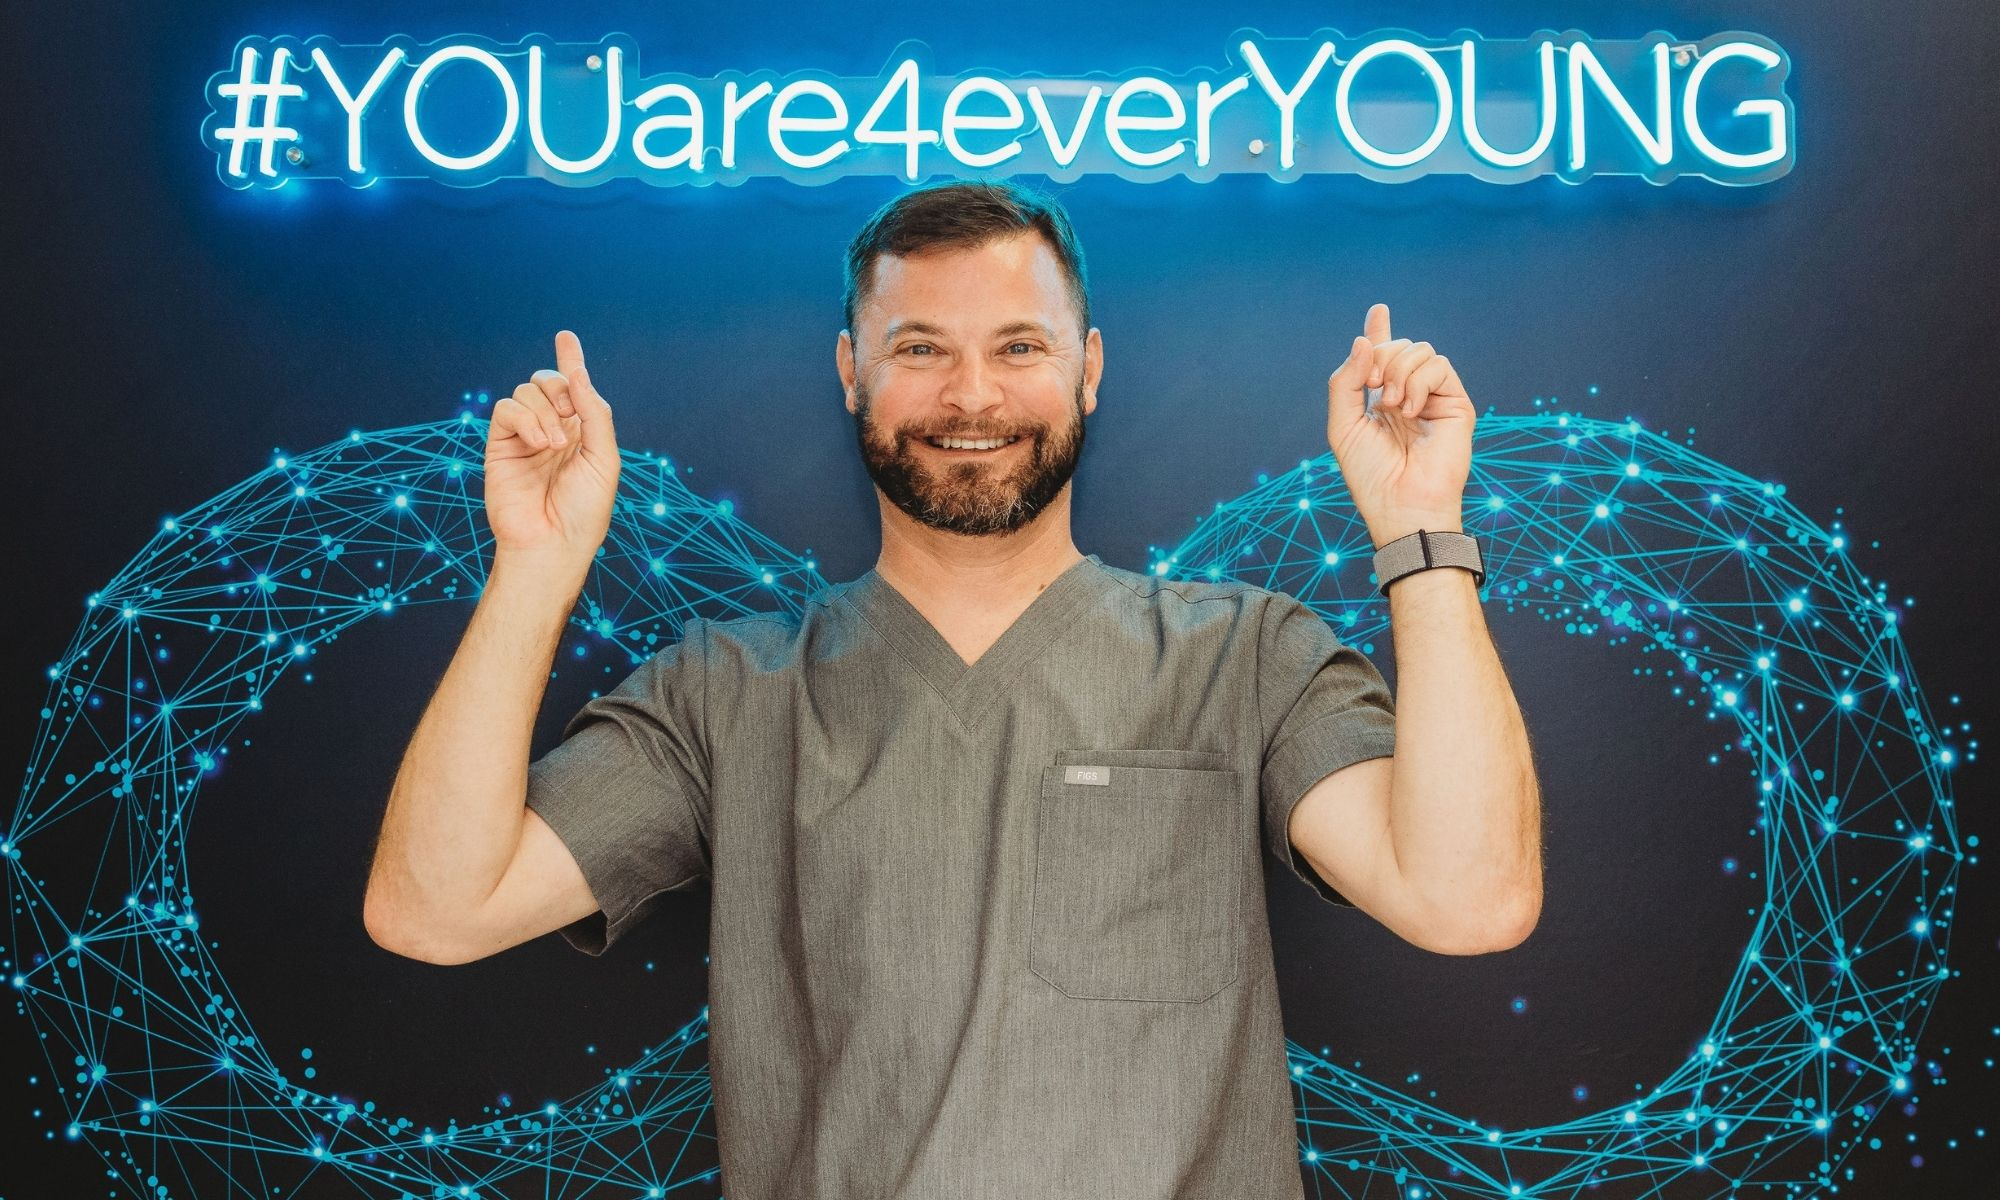 Rick Young of Medical Spa Forever Young Aesthetics in Tampa FL